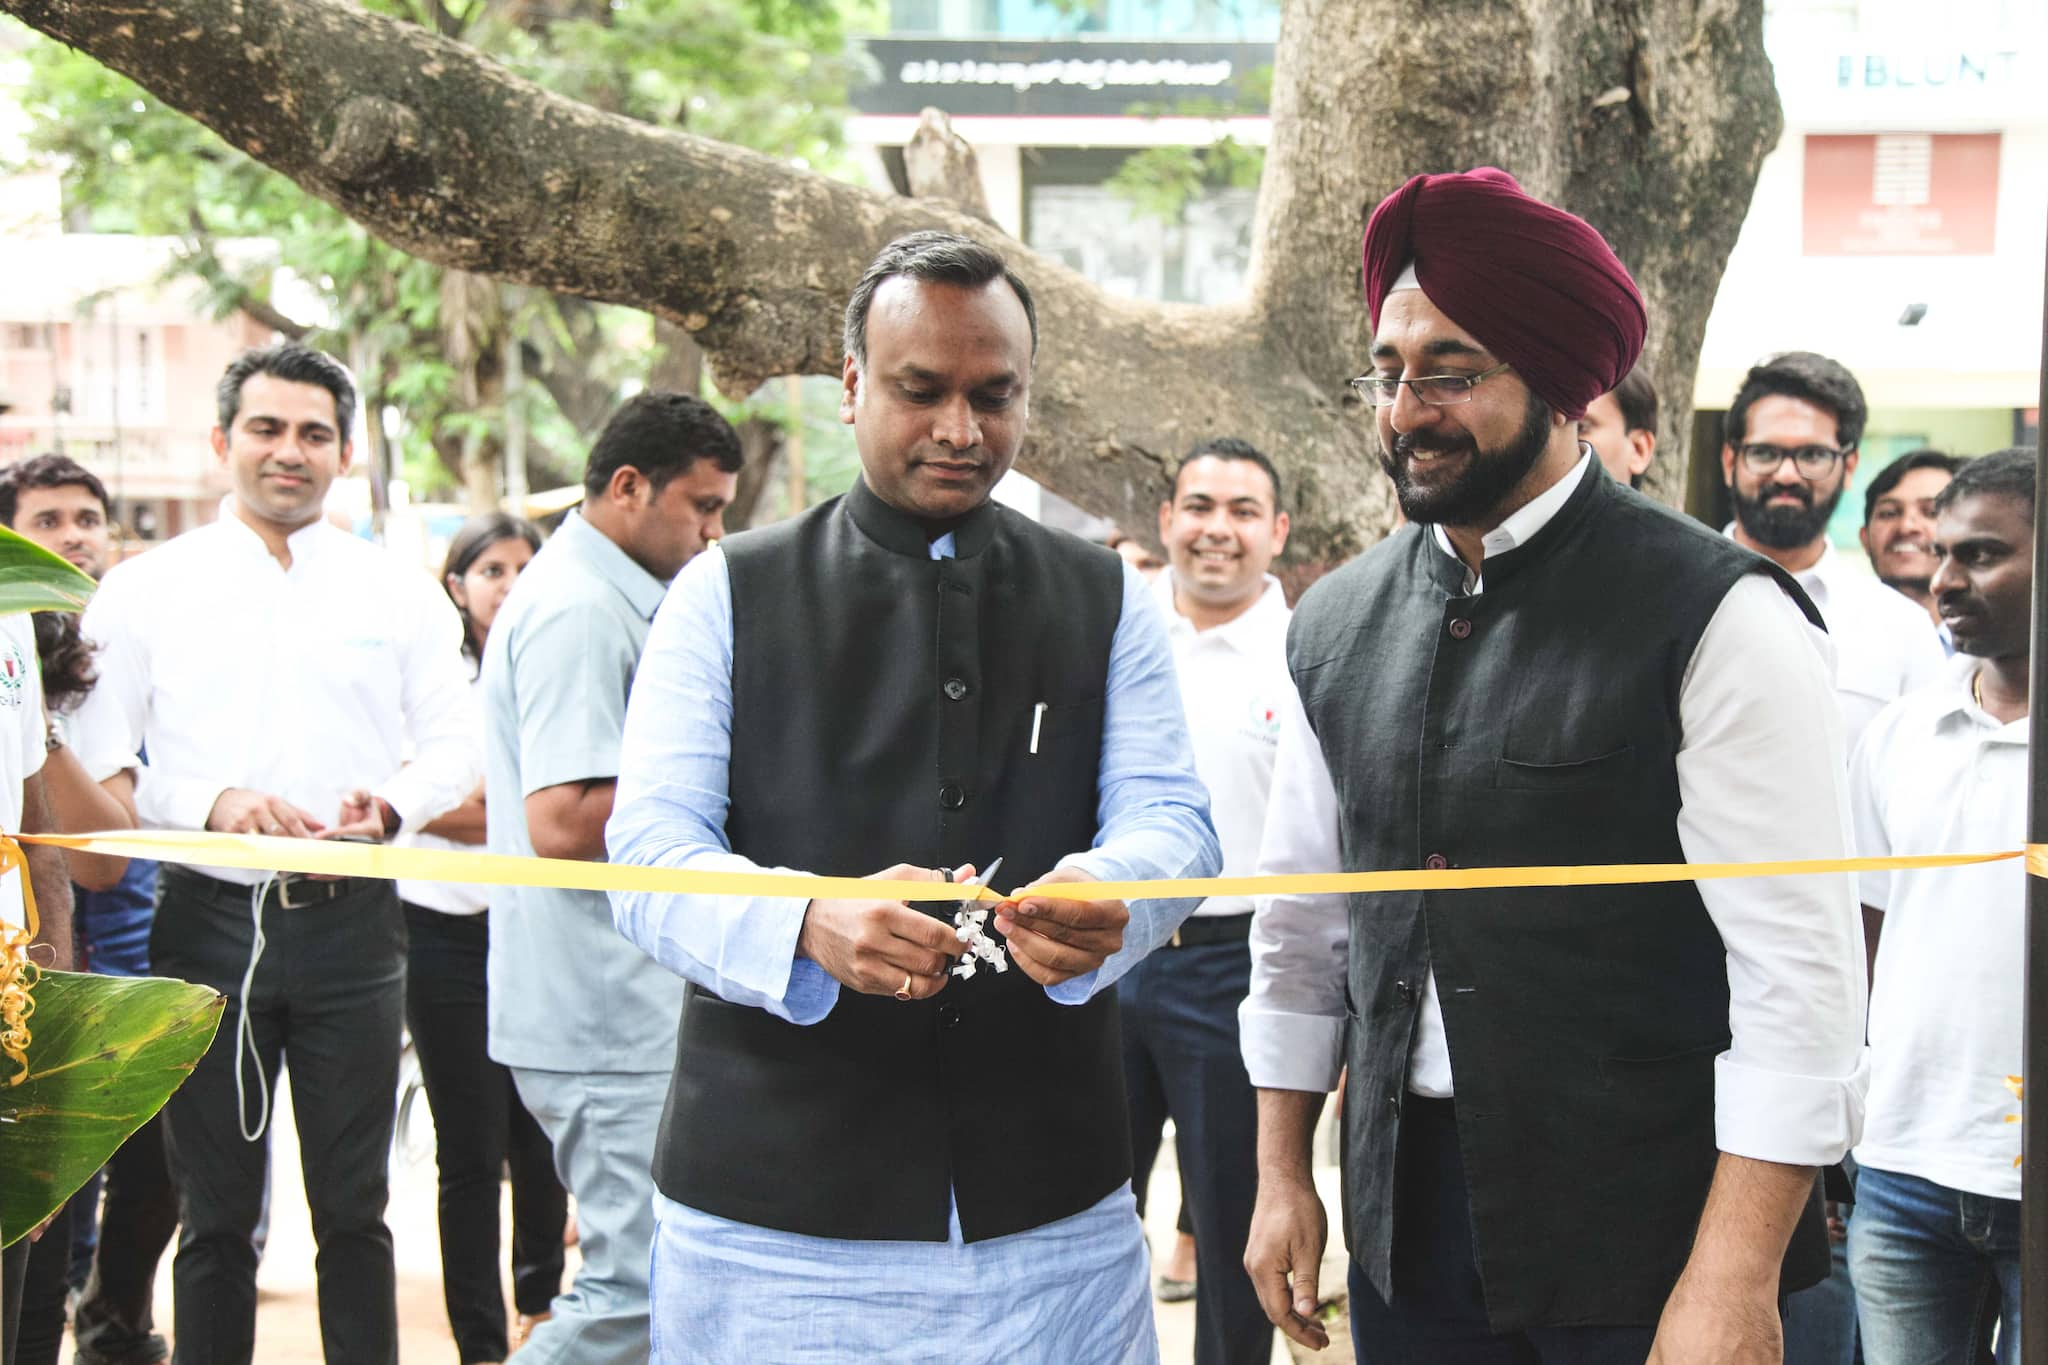 Priyank Kharge, social welfare department minister, inaugurates Chai Point's 100th store opening.